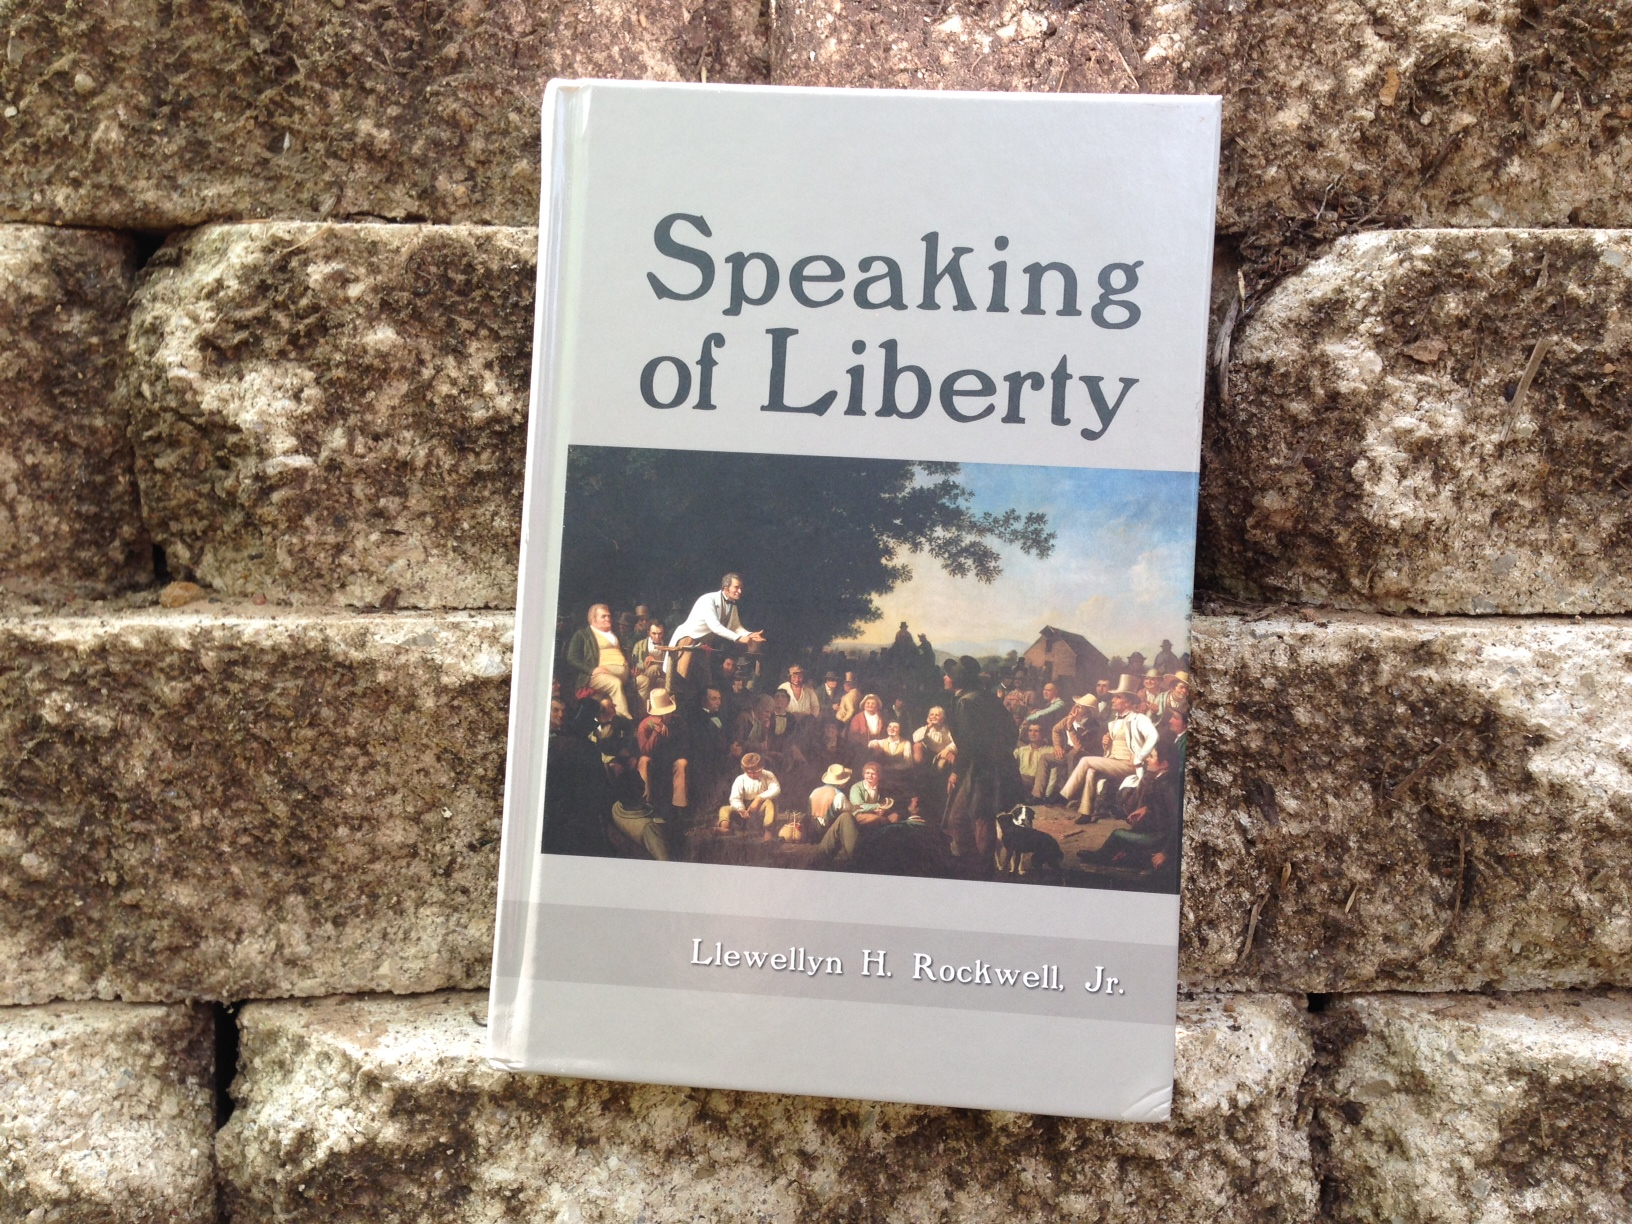 Lew Rockwell's book Speaking of Liberty